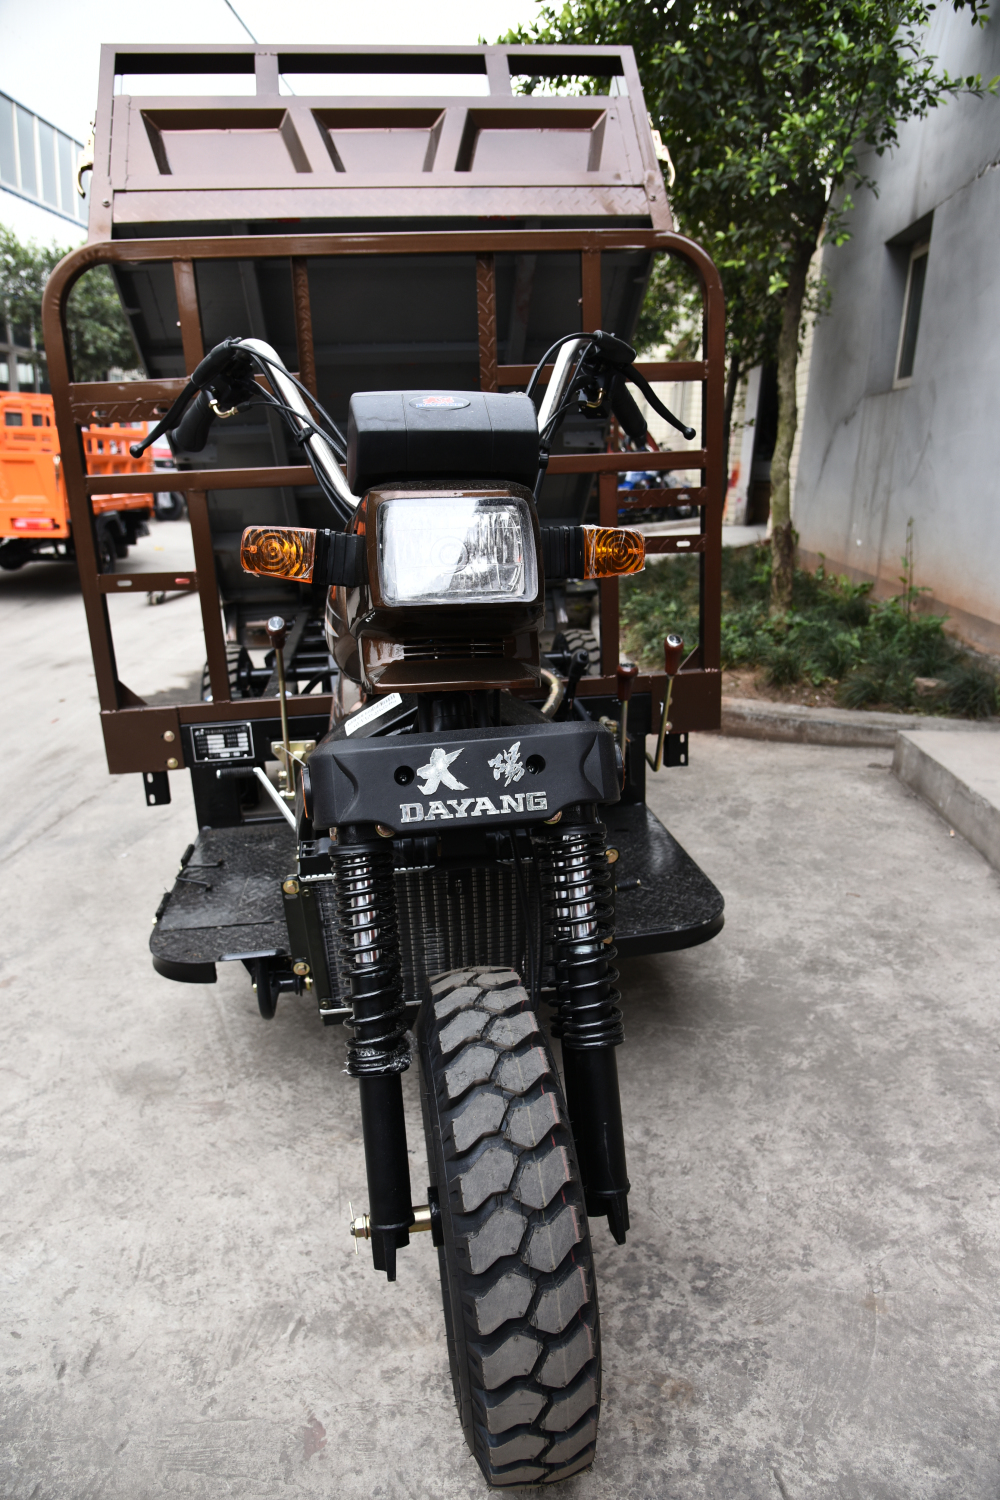 2015 new hot sale150-300 cc low oil consumption hydraulic dumper 3 wheel motorcycle